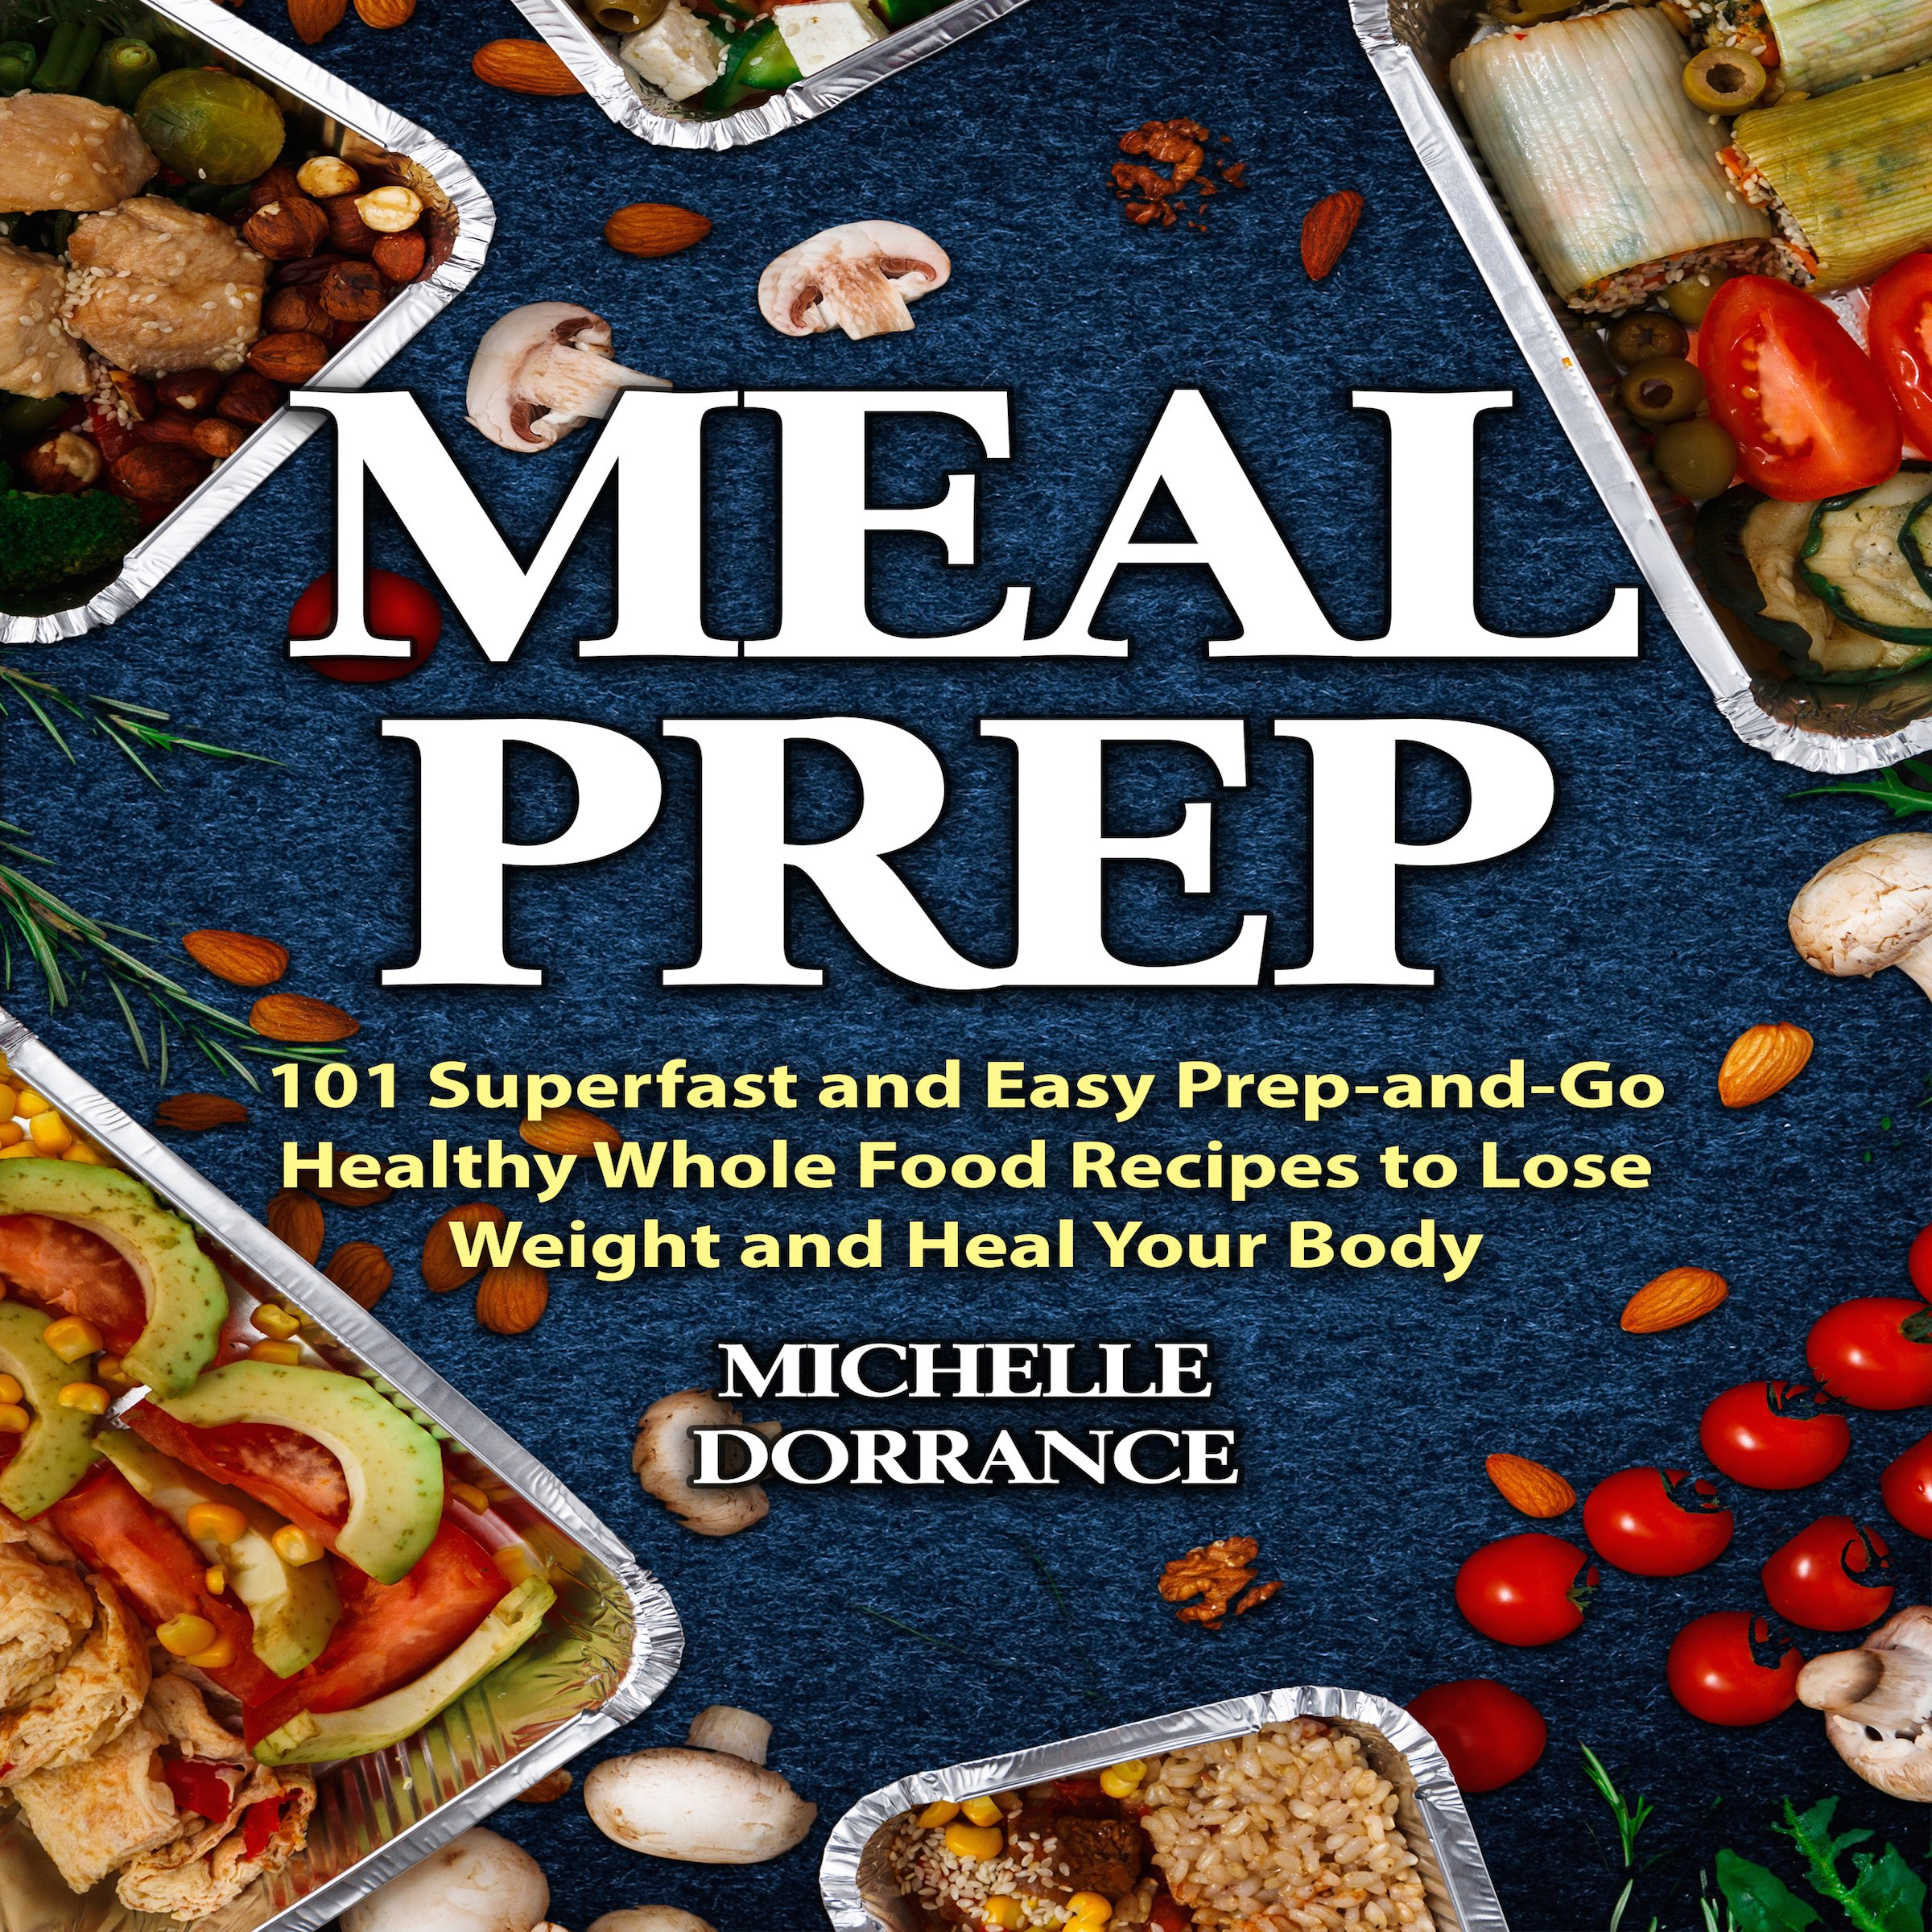 Meal Prep: 101 Superfast and Easy Prep-and-Go Healthy Whole Food Recipes to Lose Weight and Heal Your Body